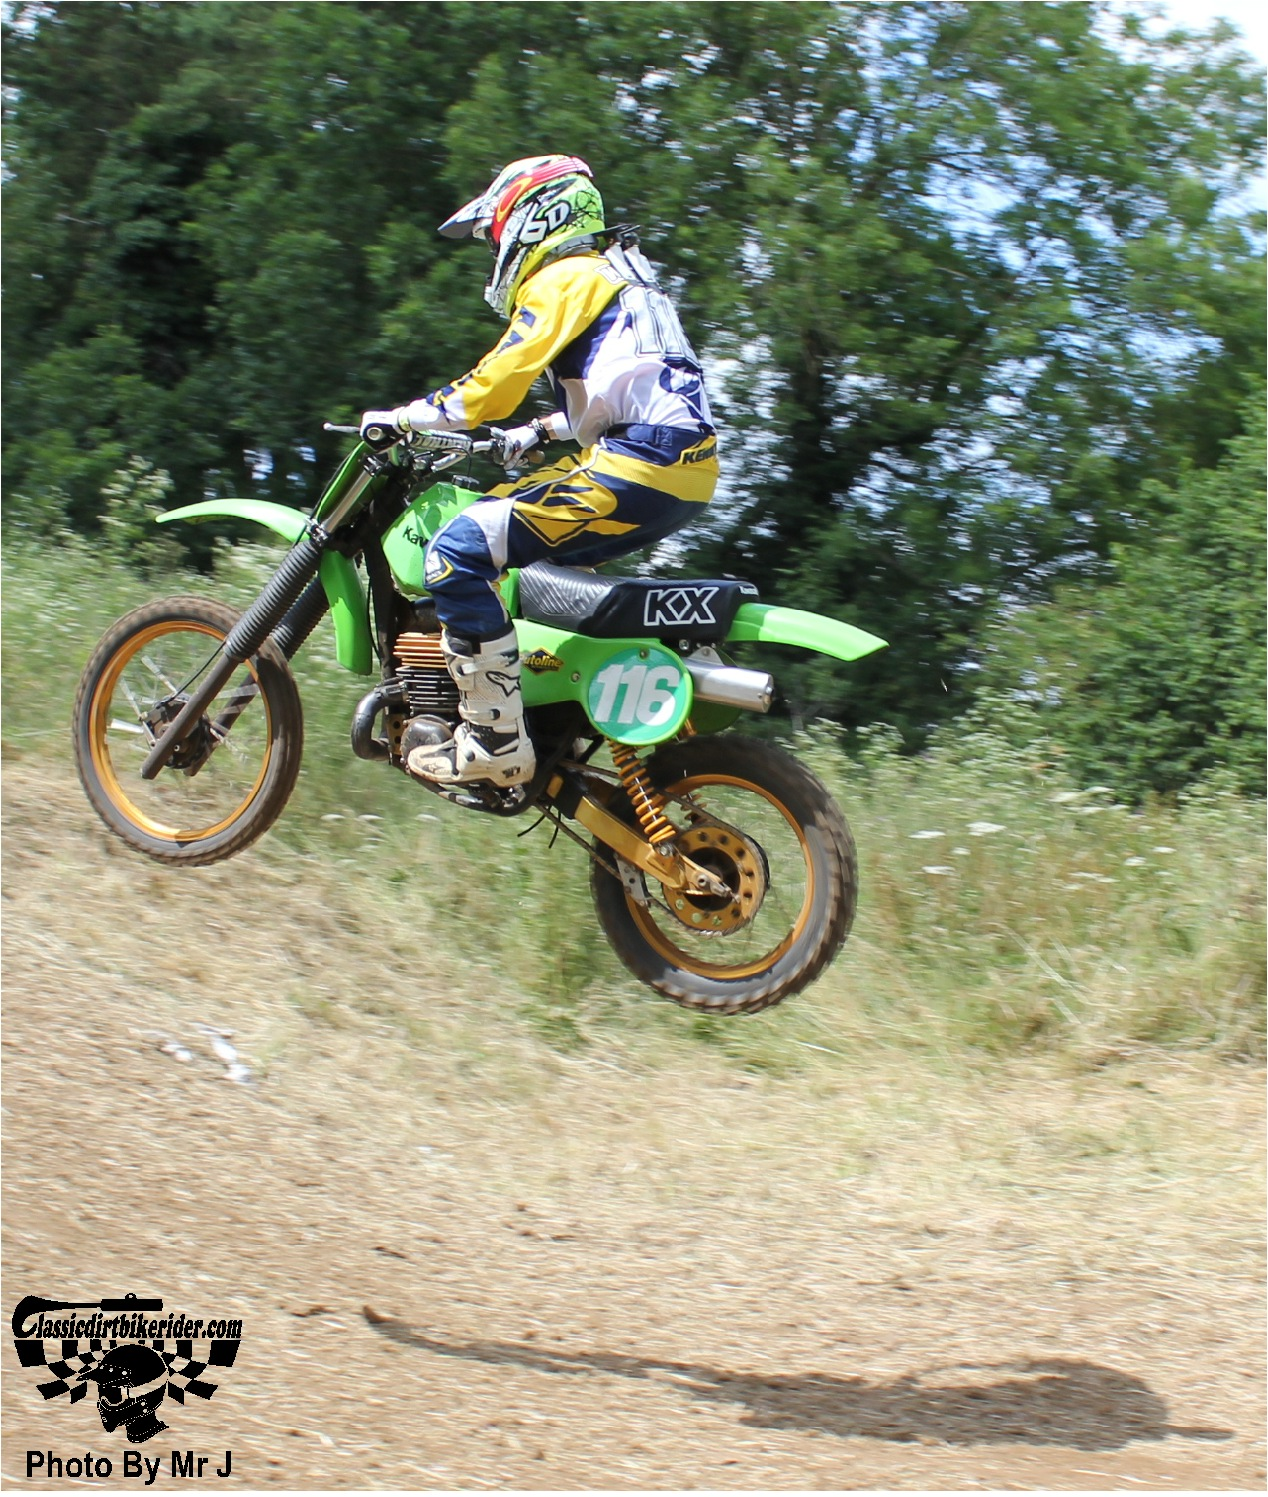 king of the castle 2015 photos Farleigh Castle twinshock motocross classicdirtbikerider.com 52